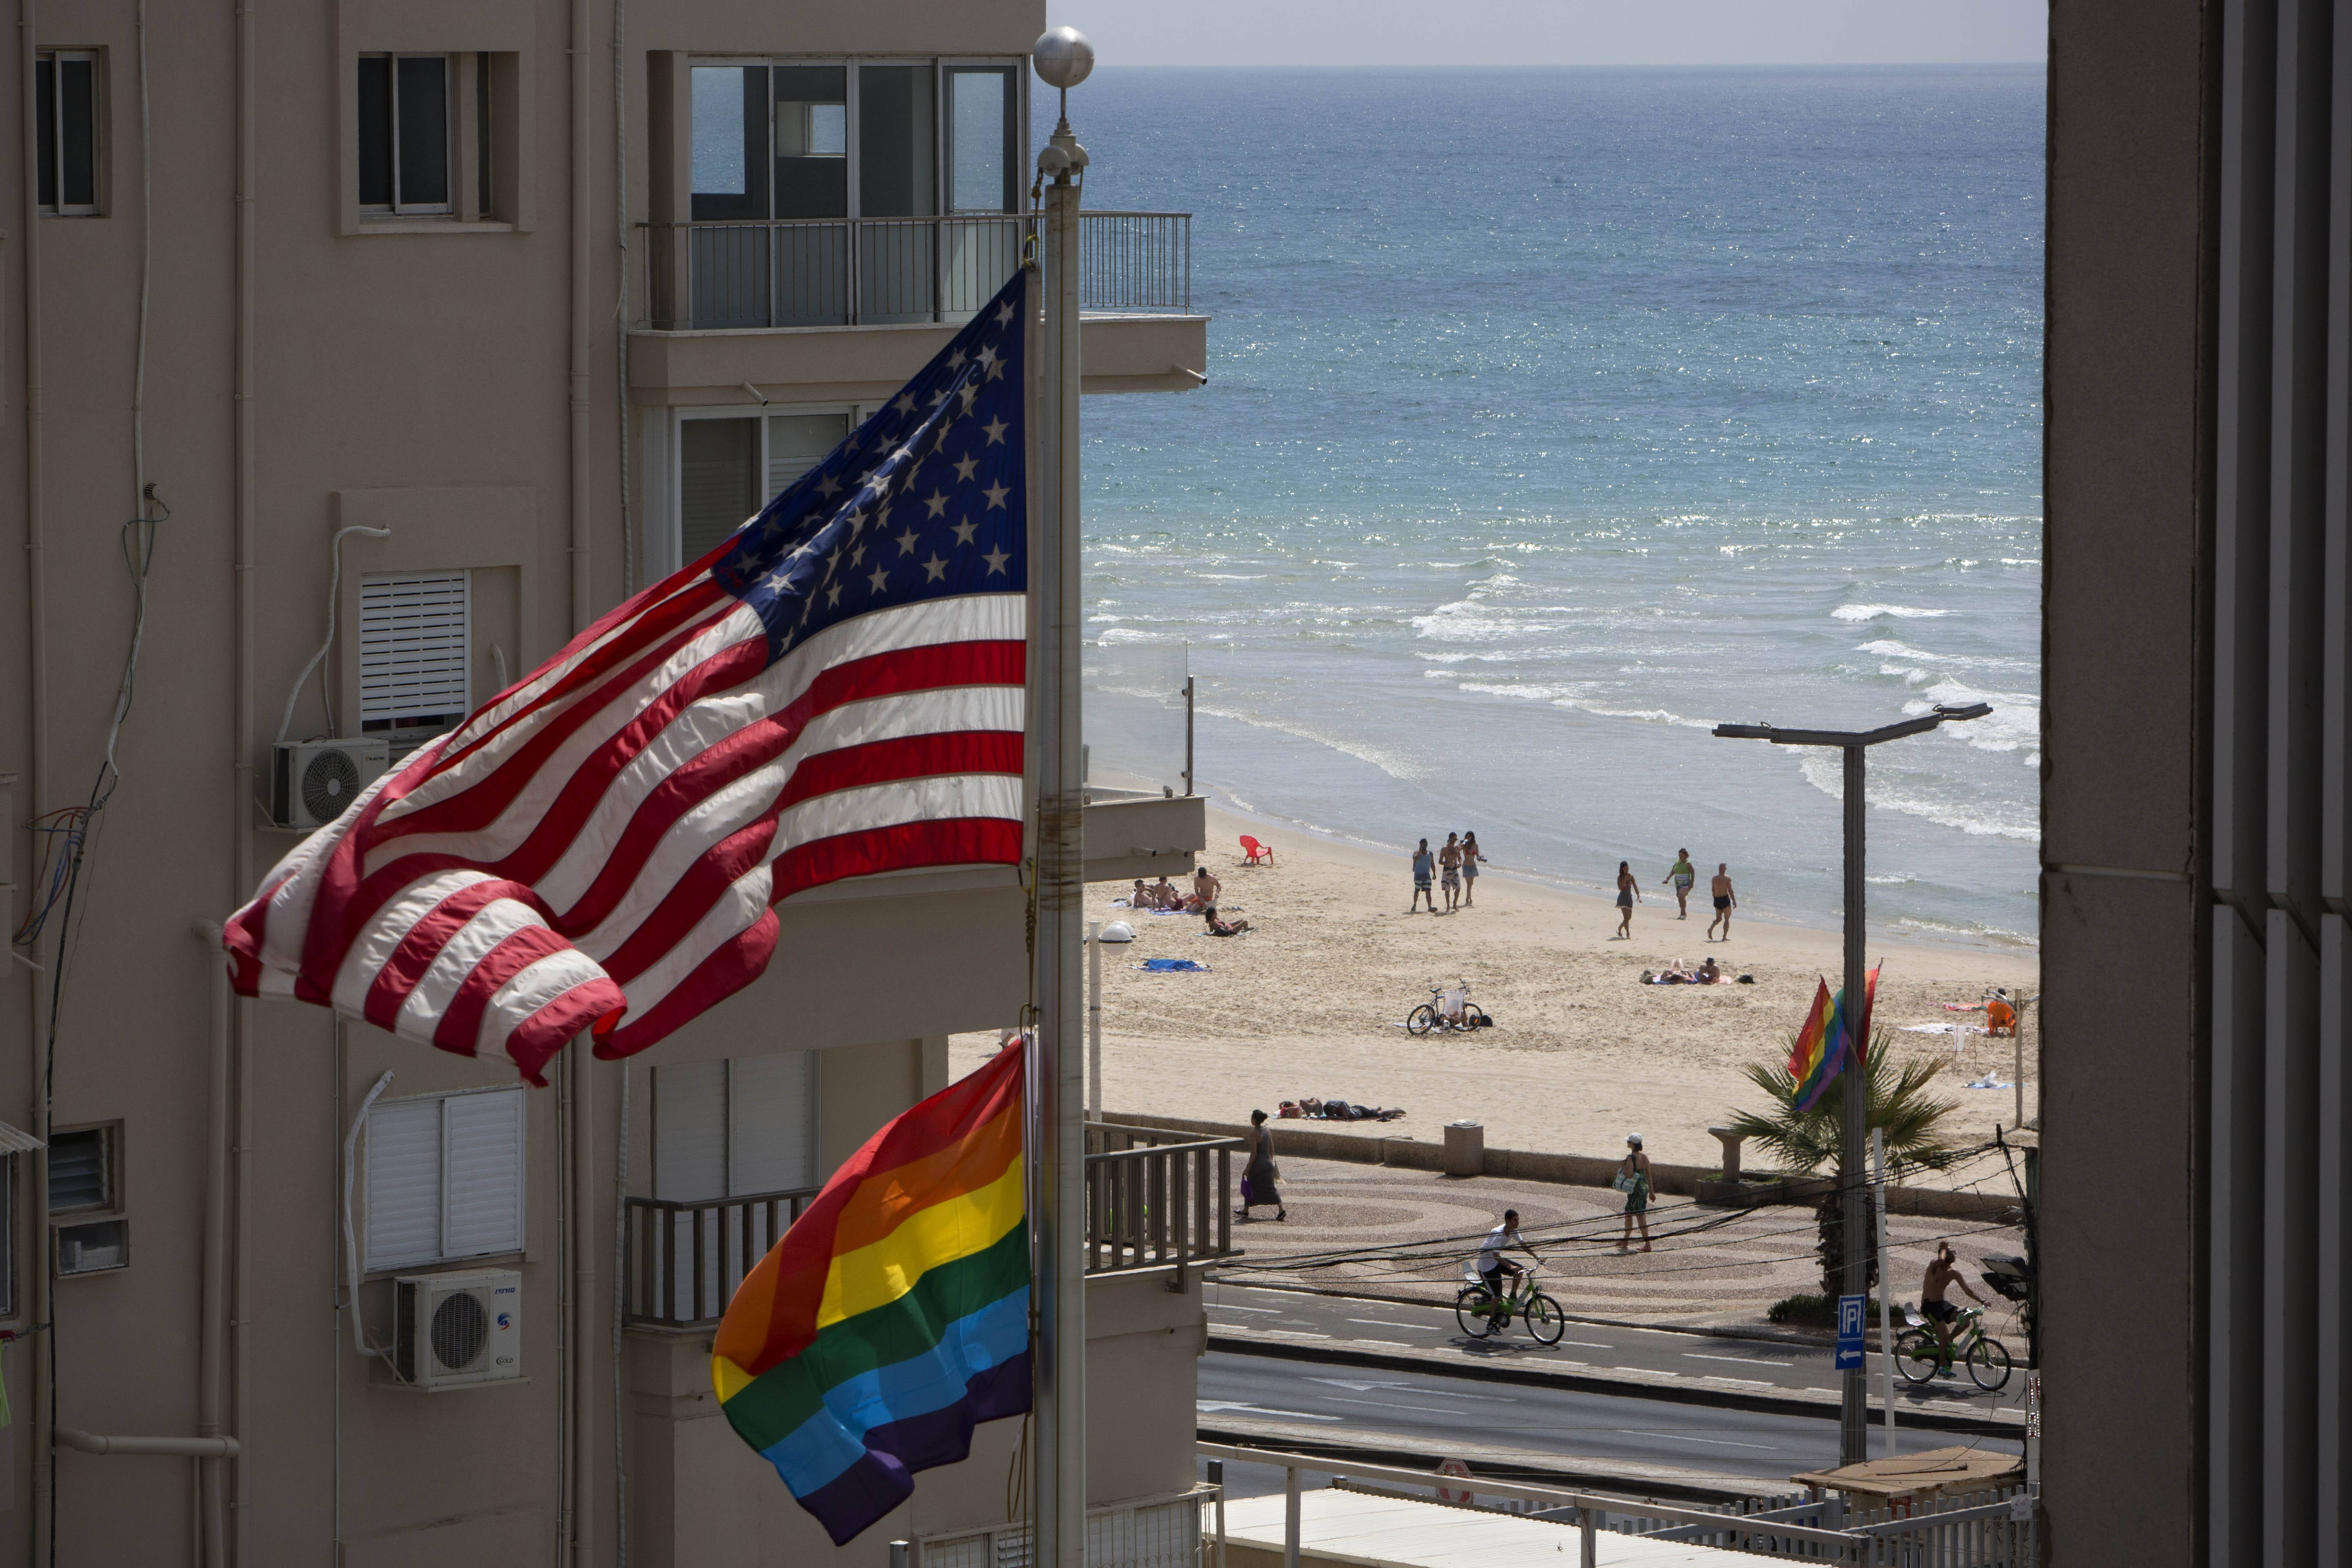 On June 12 a U.S. flag is raised alongside a pride flag on the U.S. Embassy a day before the Gay Pride Parade in Tel Aviv, Israel.